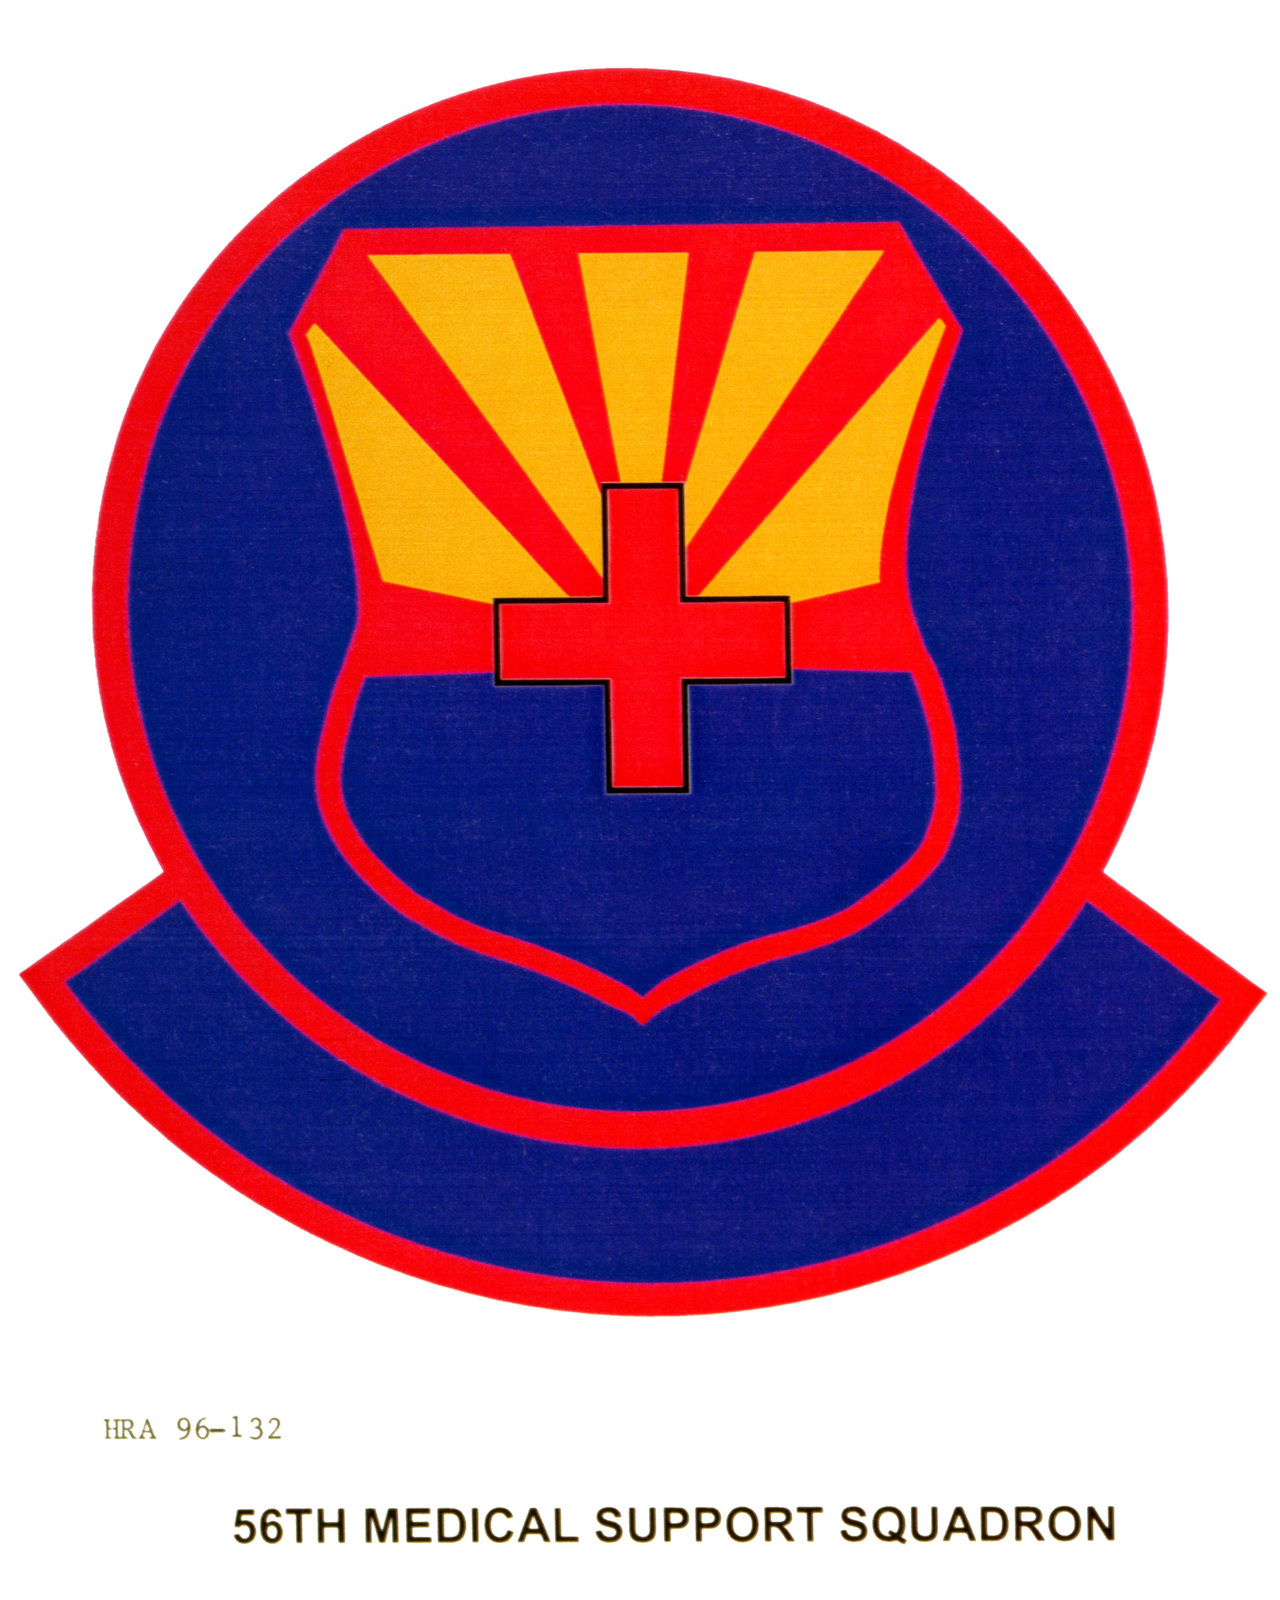 Air Force Organizational Emblem. 56th Medical Squadron Exact Date Shot Unknown